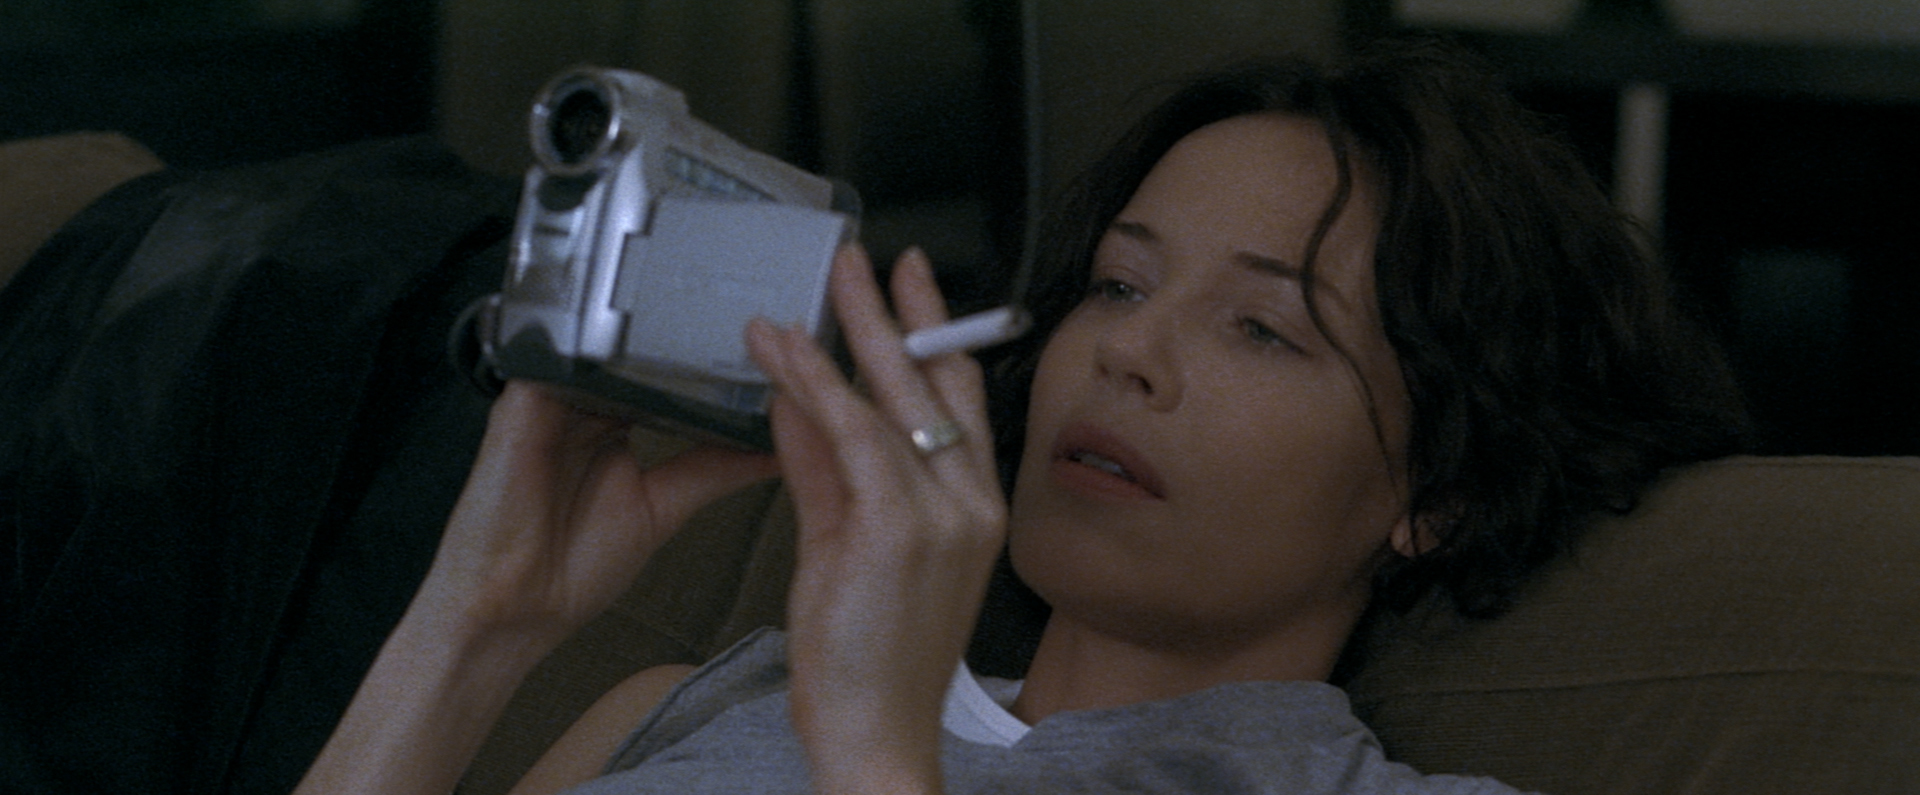 A still image from the 2002 French film